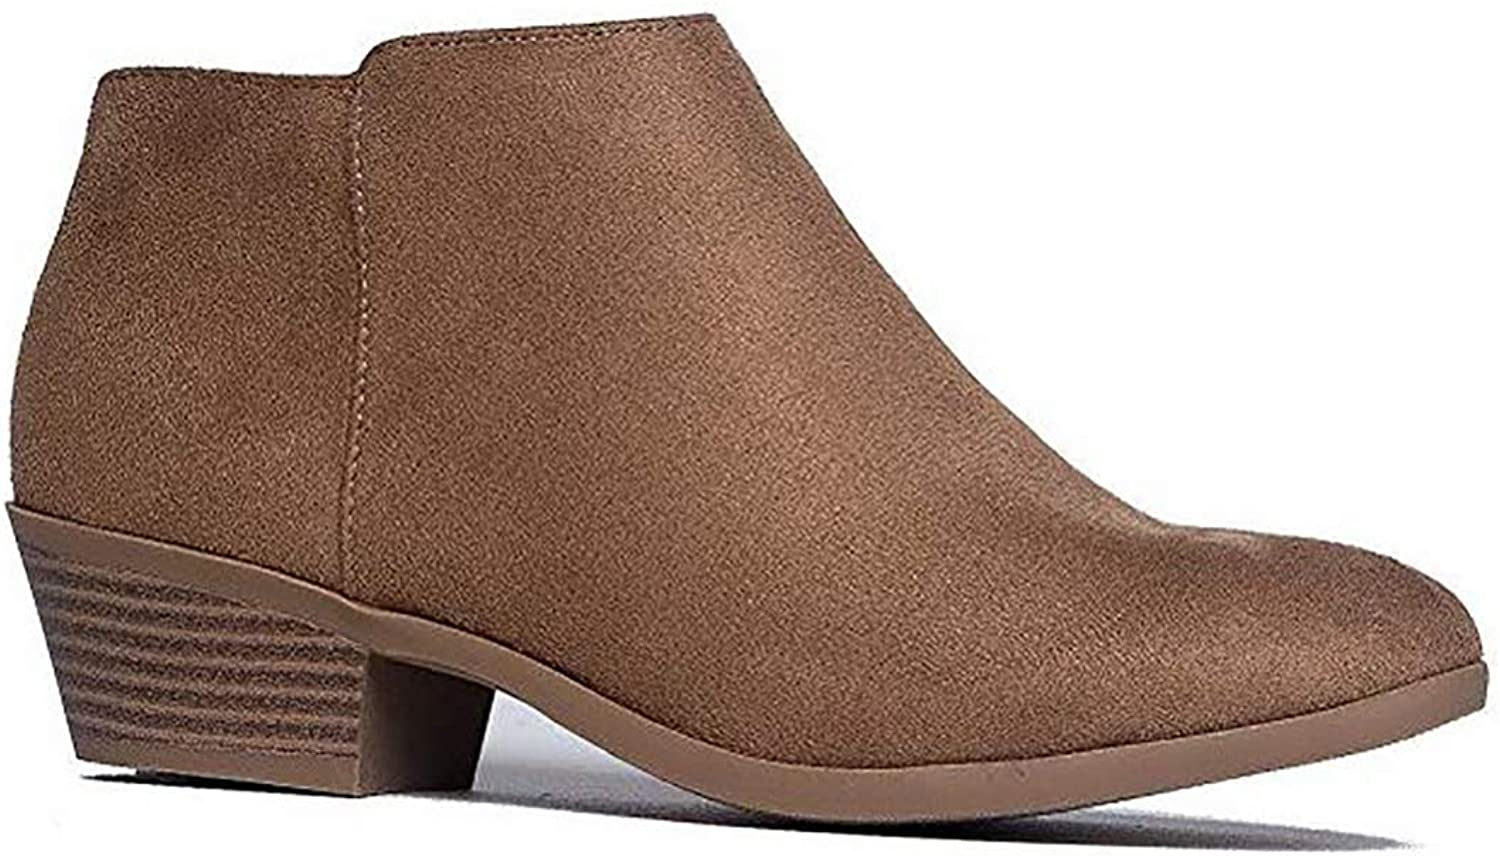 MVE shoes Cute Bootie - Womens Almond Toe Strech Slip On Ankle Boot - Low Heel